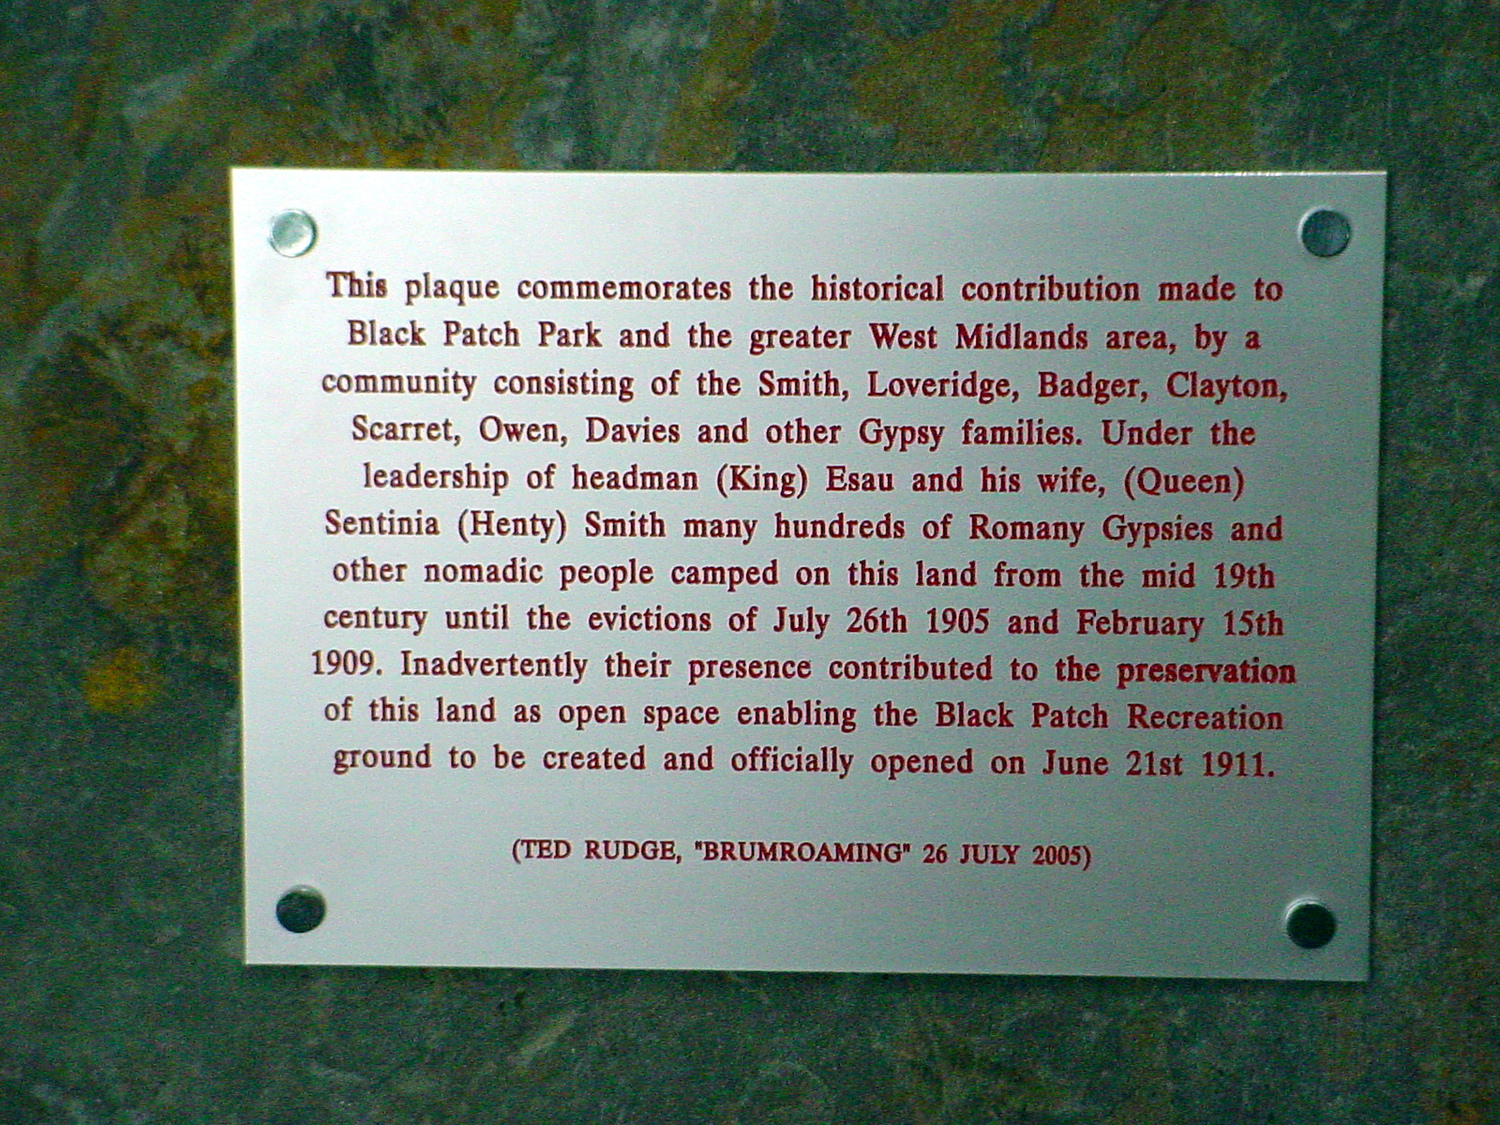 INSCRIPTION ON THE PLAQUE THAT IS ATTACHED TO THE MEMORIAL STONE